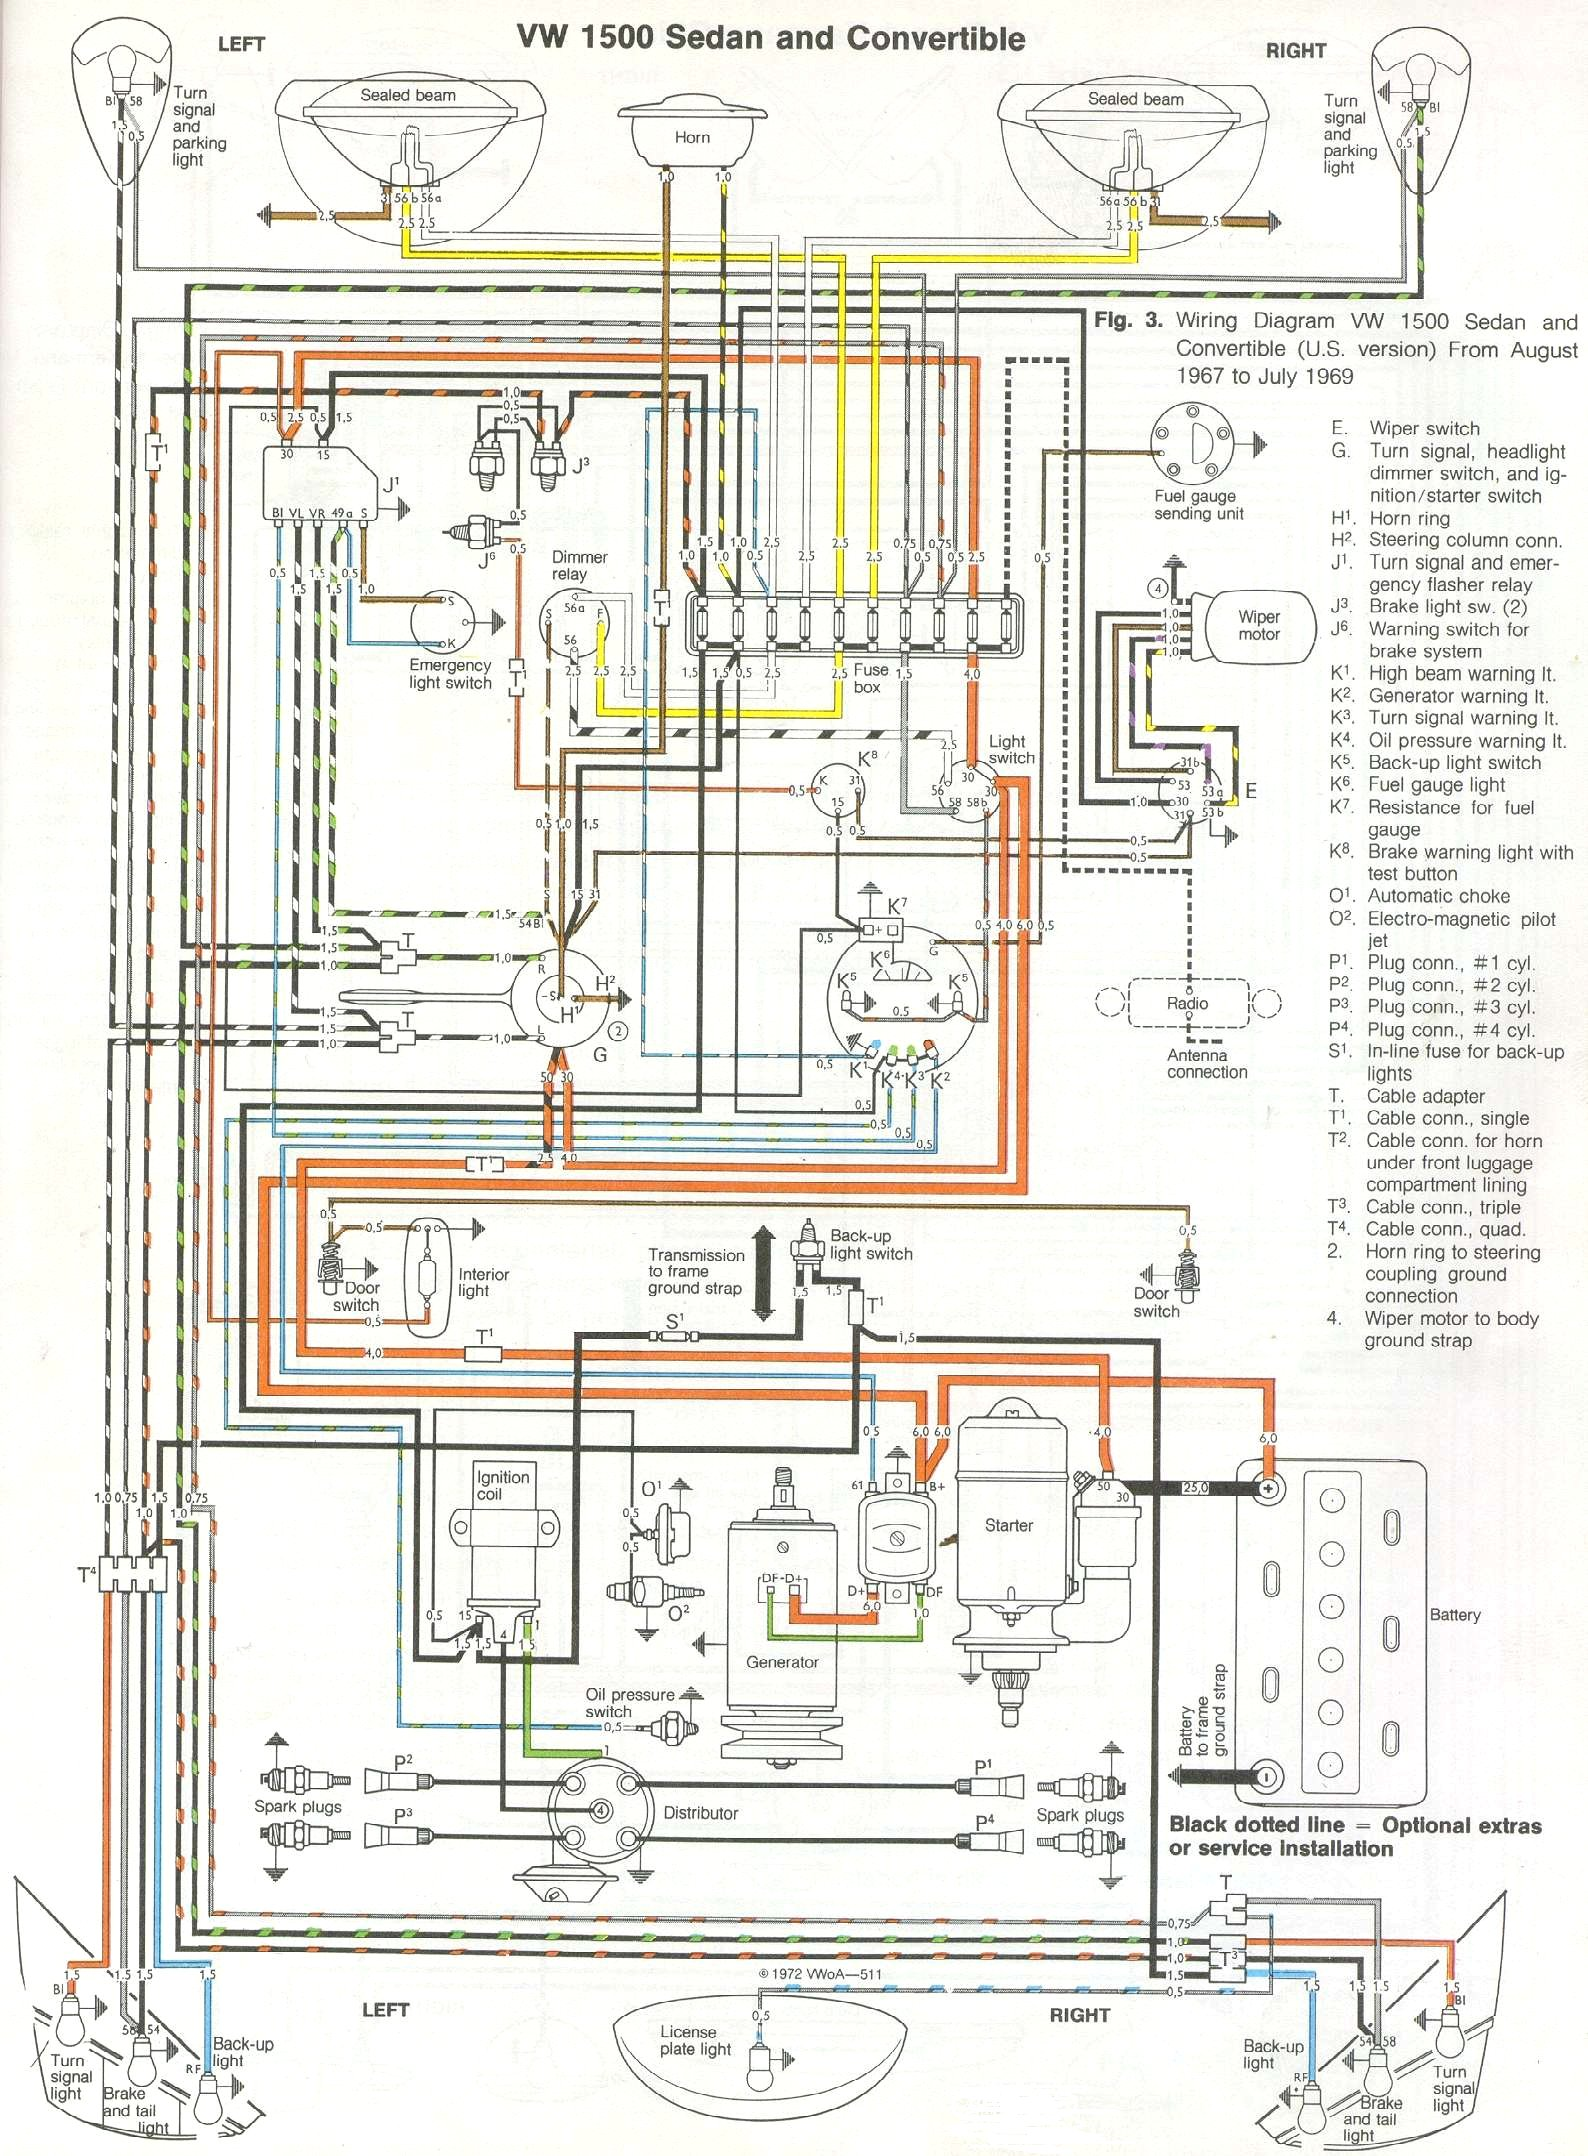 bug_6869 1969 71 beetle wiring diagram thegoldenbug com new beetle wiring diagram at bayanpartner.co